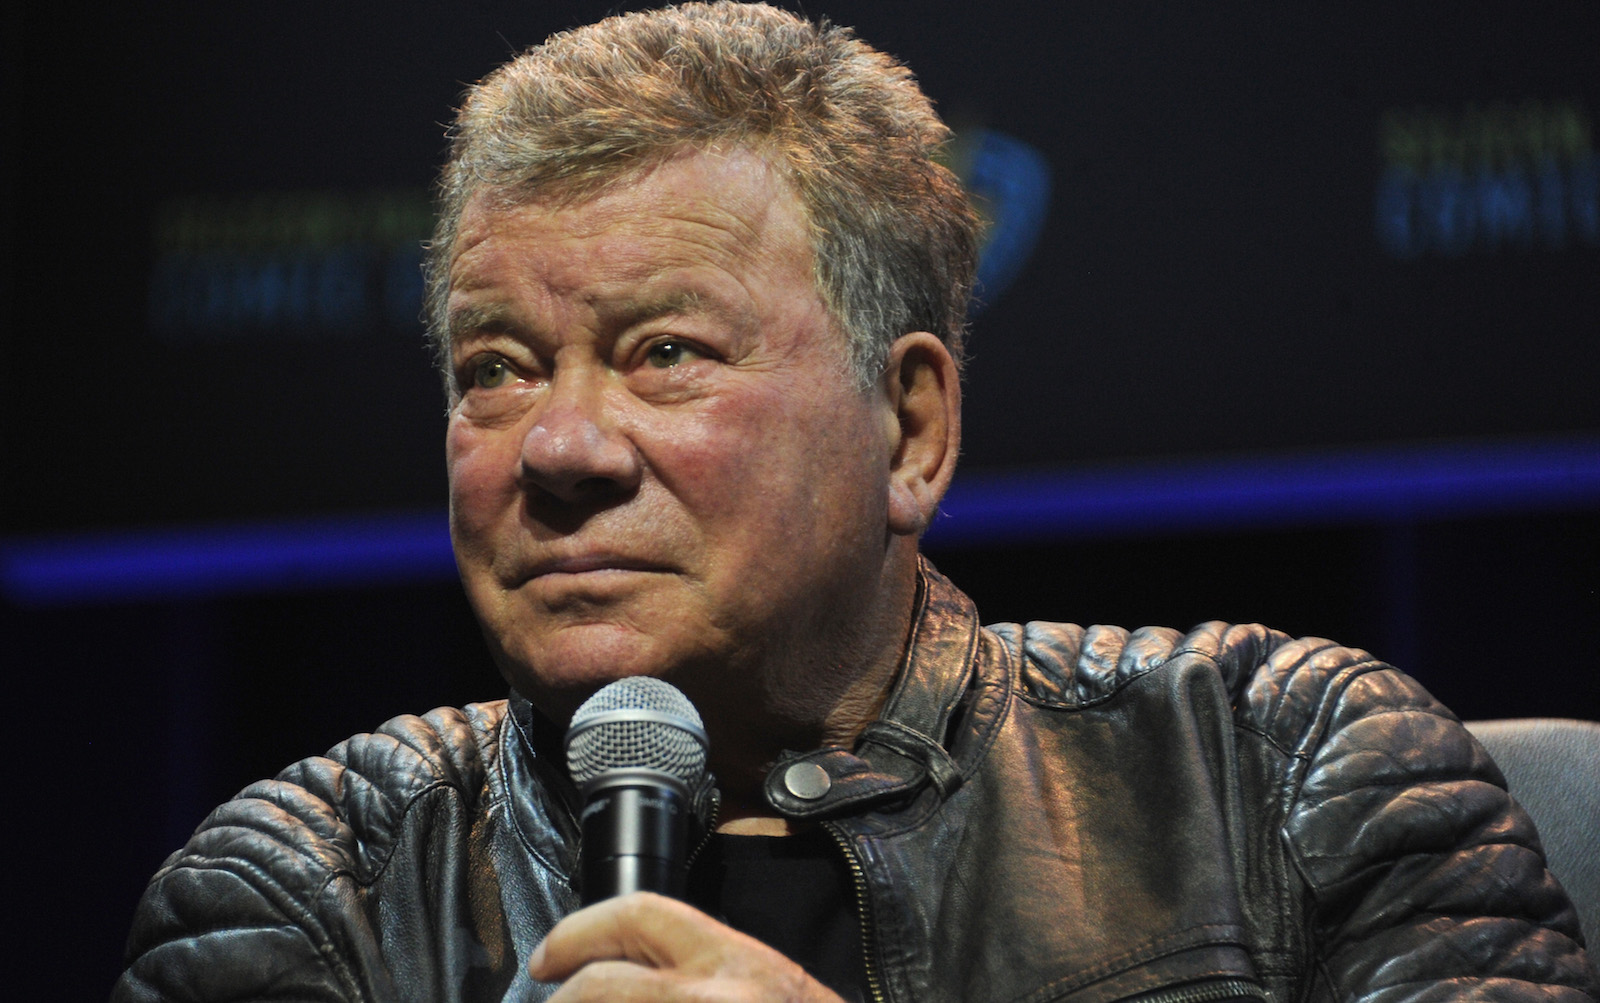 SAN JOSE, CA - APRIL 22:  Actor William Shatner moderates the 'Star Trek: The Next Generation' panel on day 2 of Silicon Valley Comic Con 2017 held at San Jose Convention Center on April 22, 2017 in San Jose, California.  (Photo by Albert L. Ortega/Getty